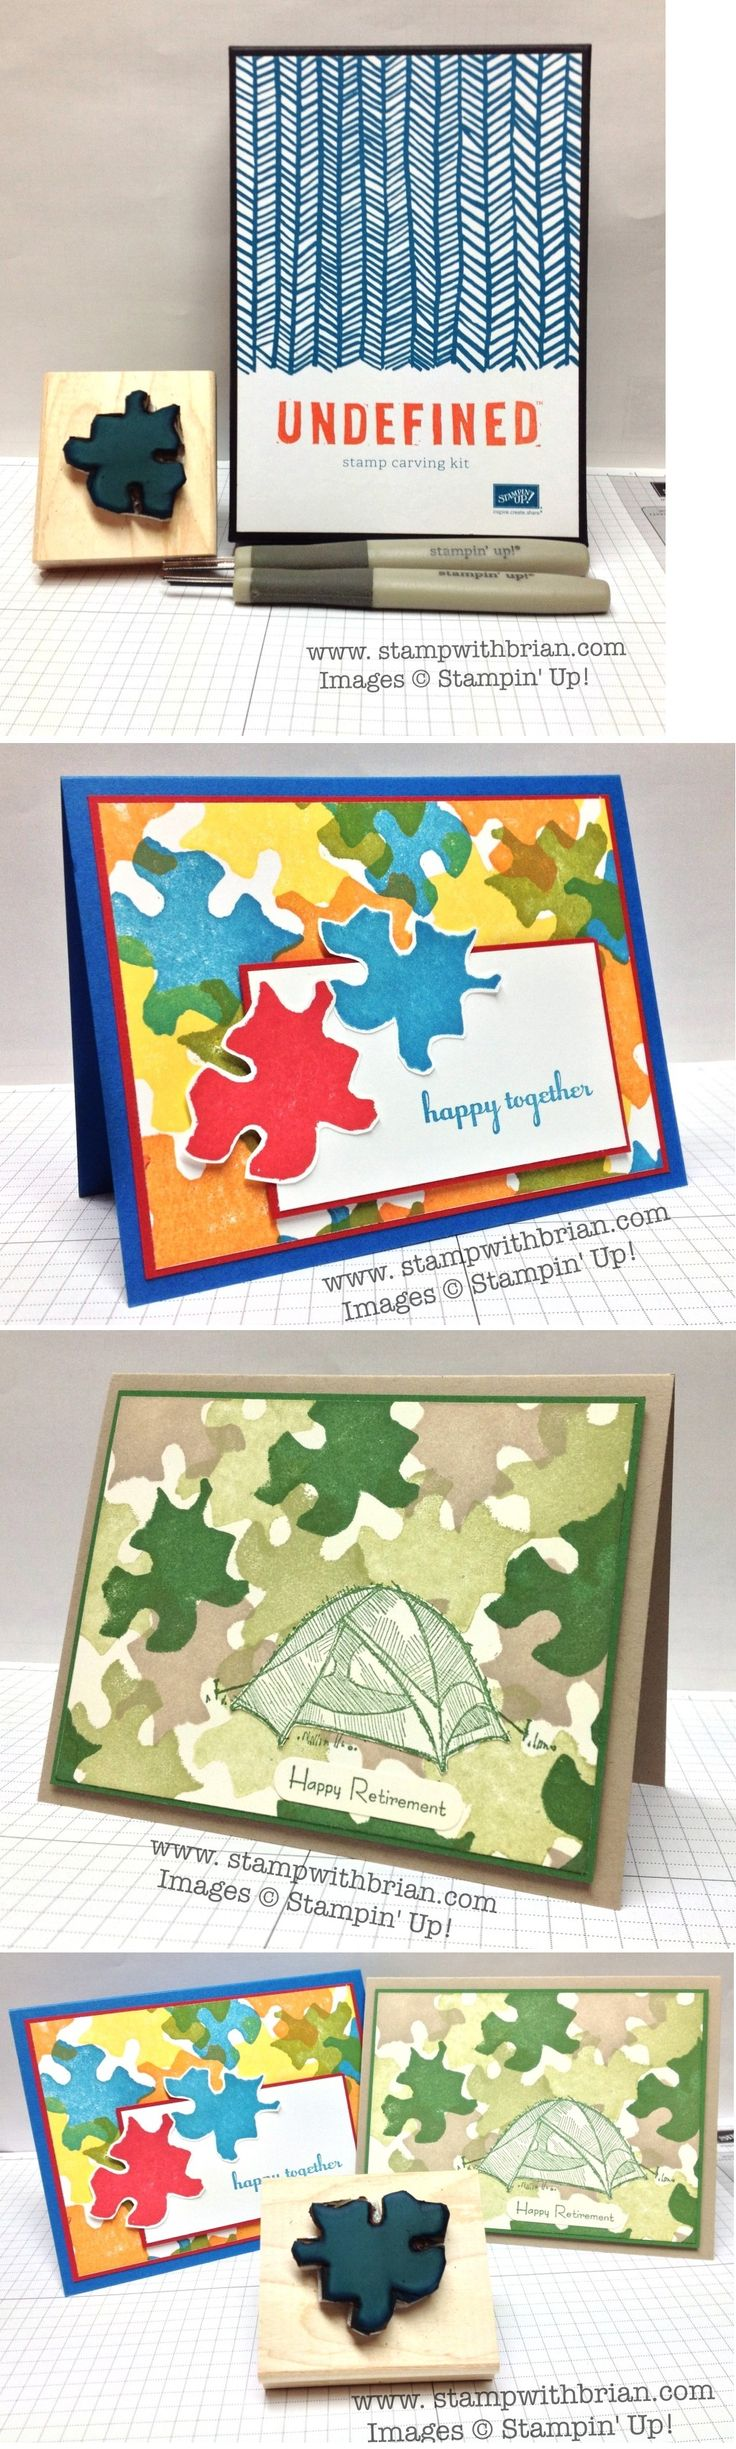 Stampin' Up! Undefined Stamp Carving Kit, Brian King